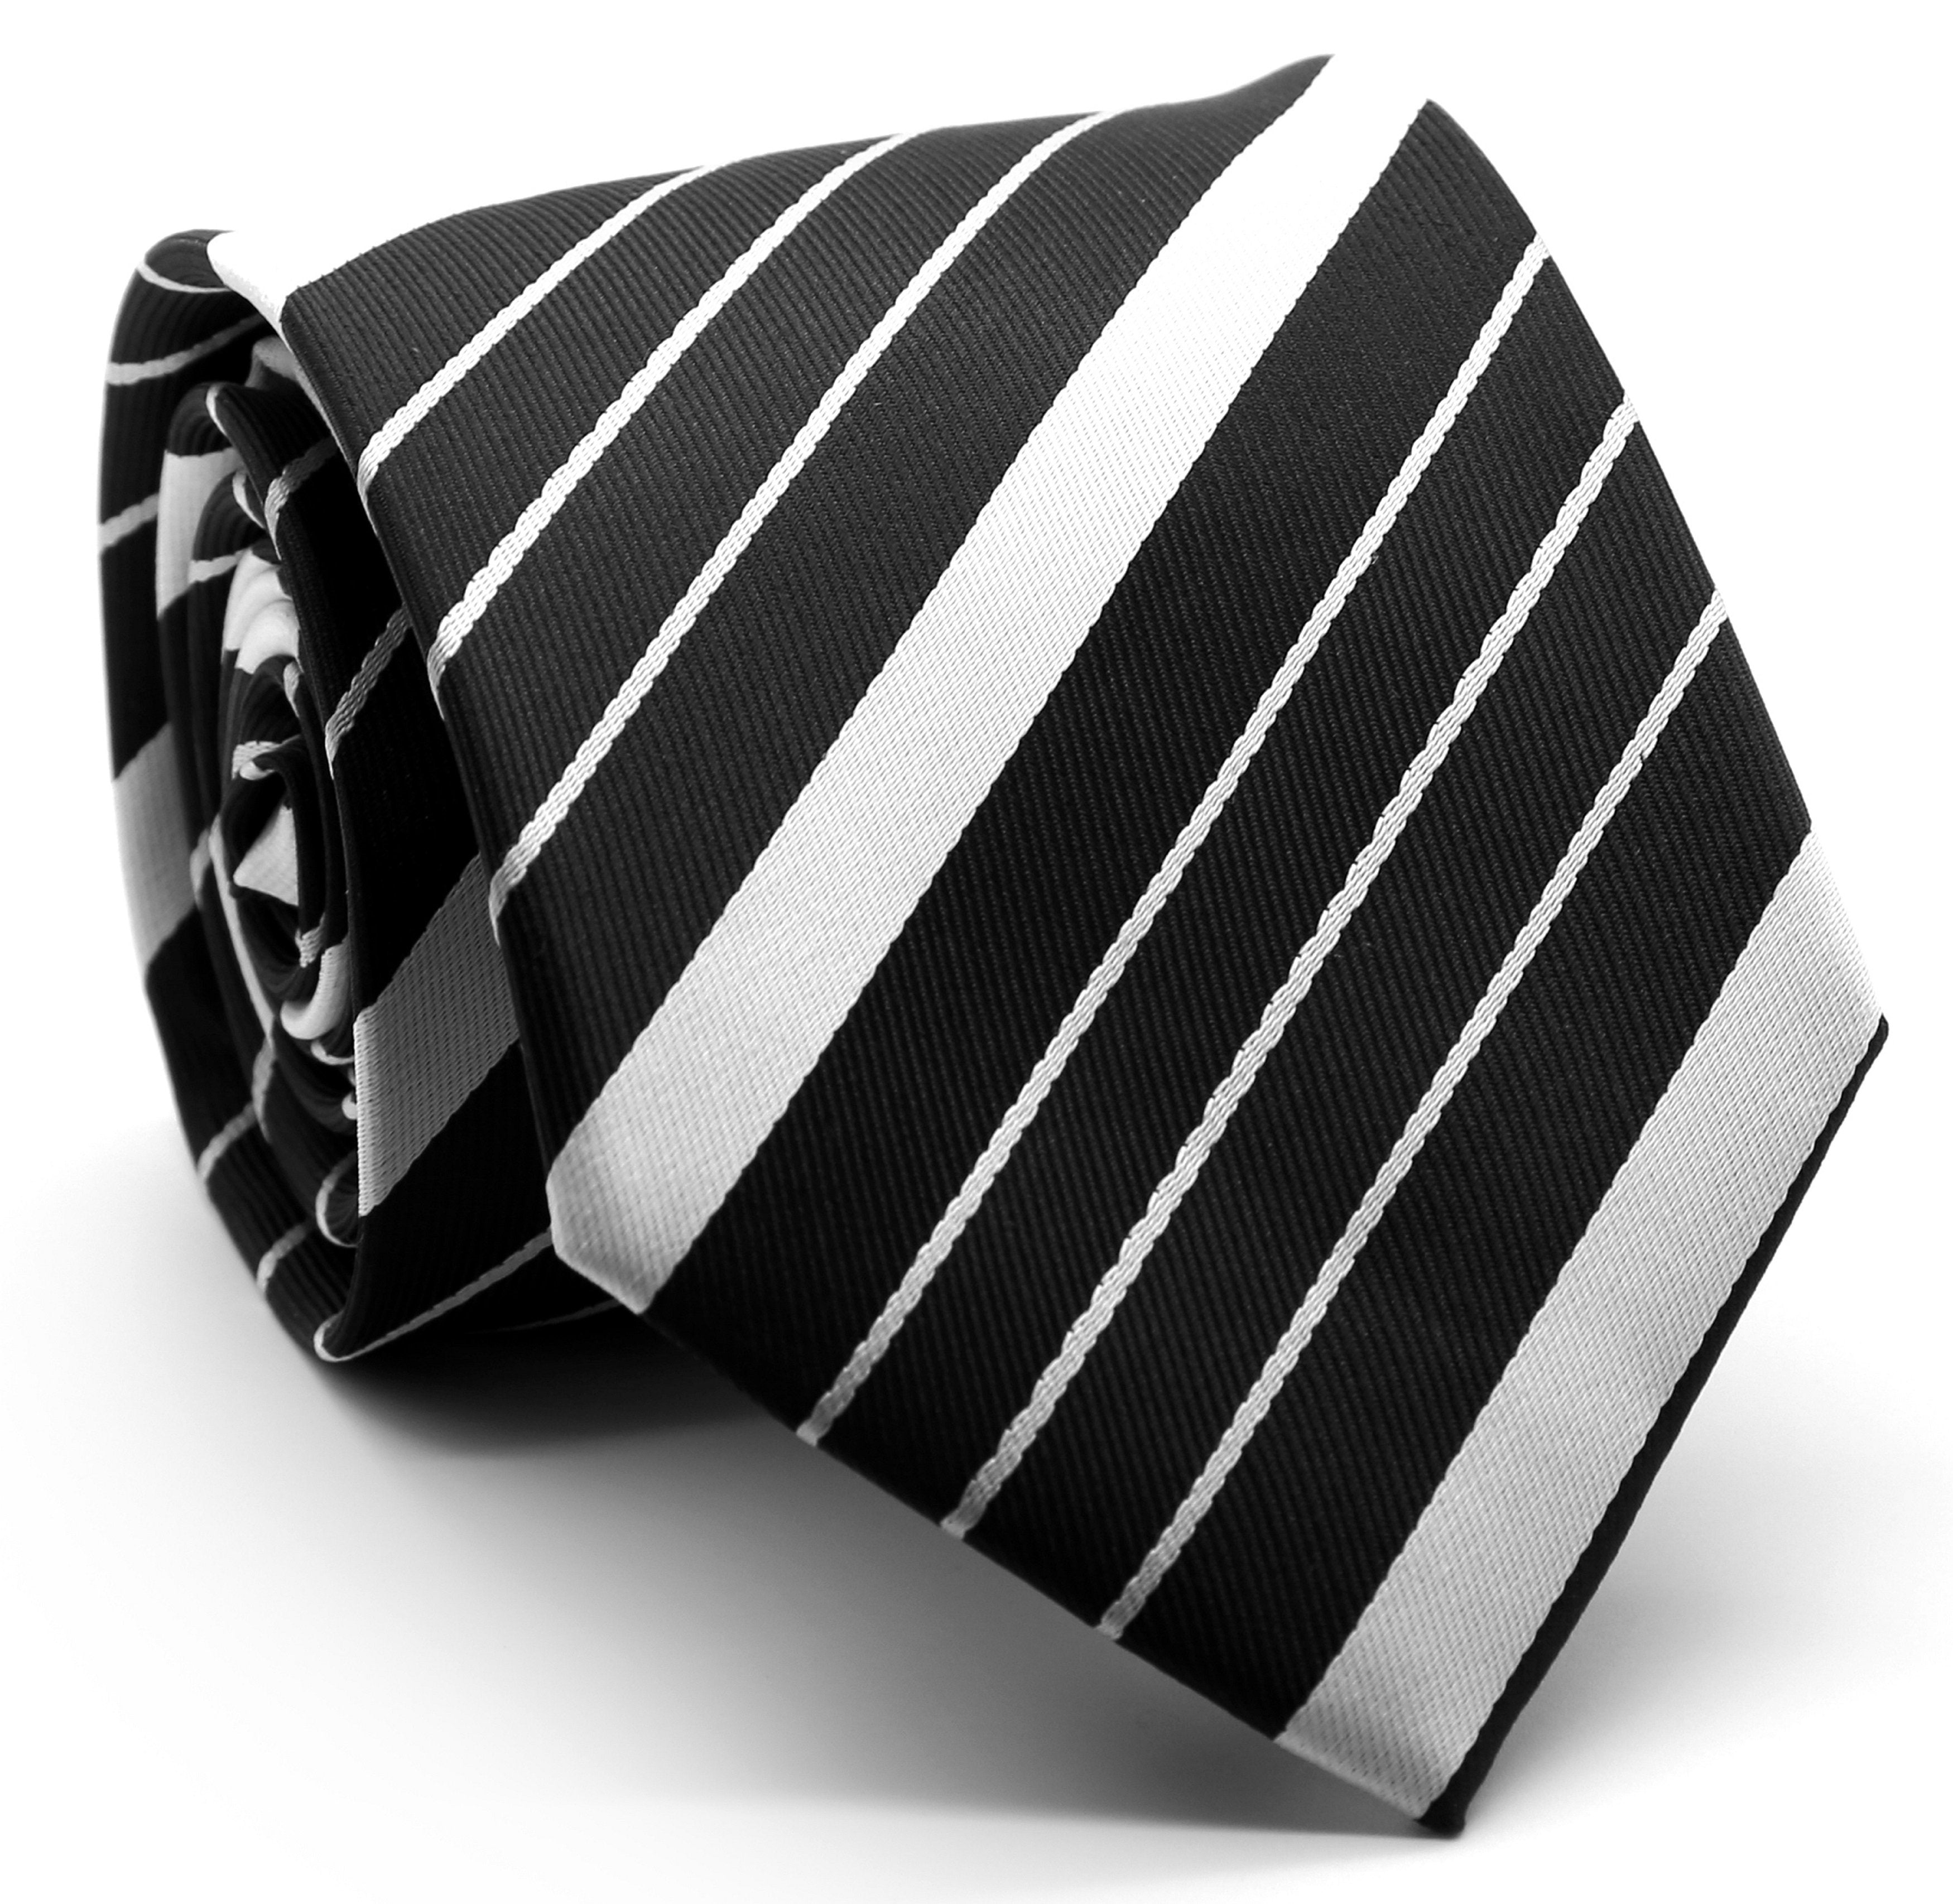 Mens Dads Classic Black Striped Pattern Business Casual Necktie & Hanky Set EO-8 - Giorgio's Menswear